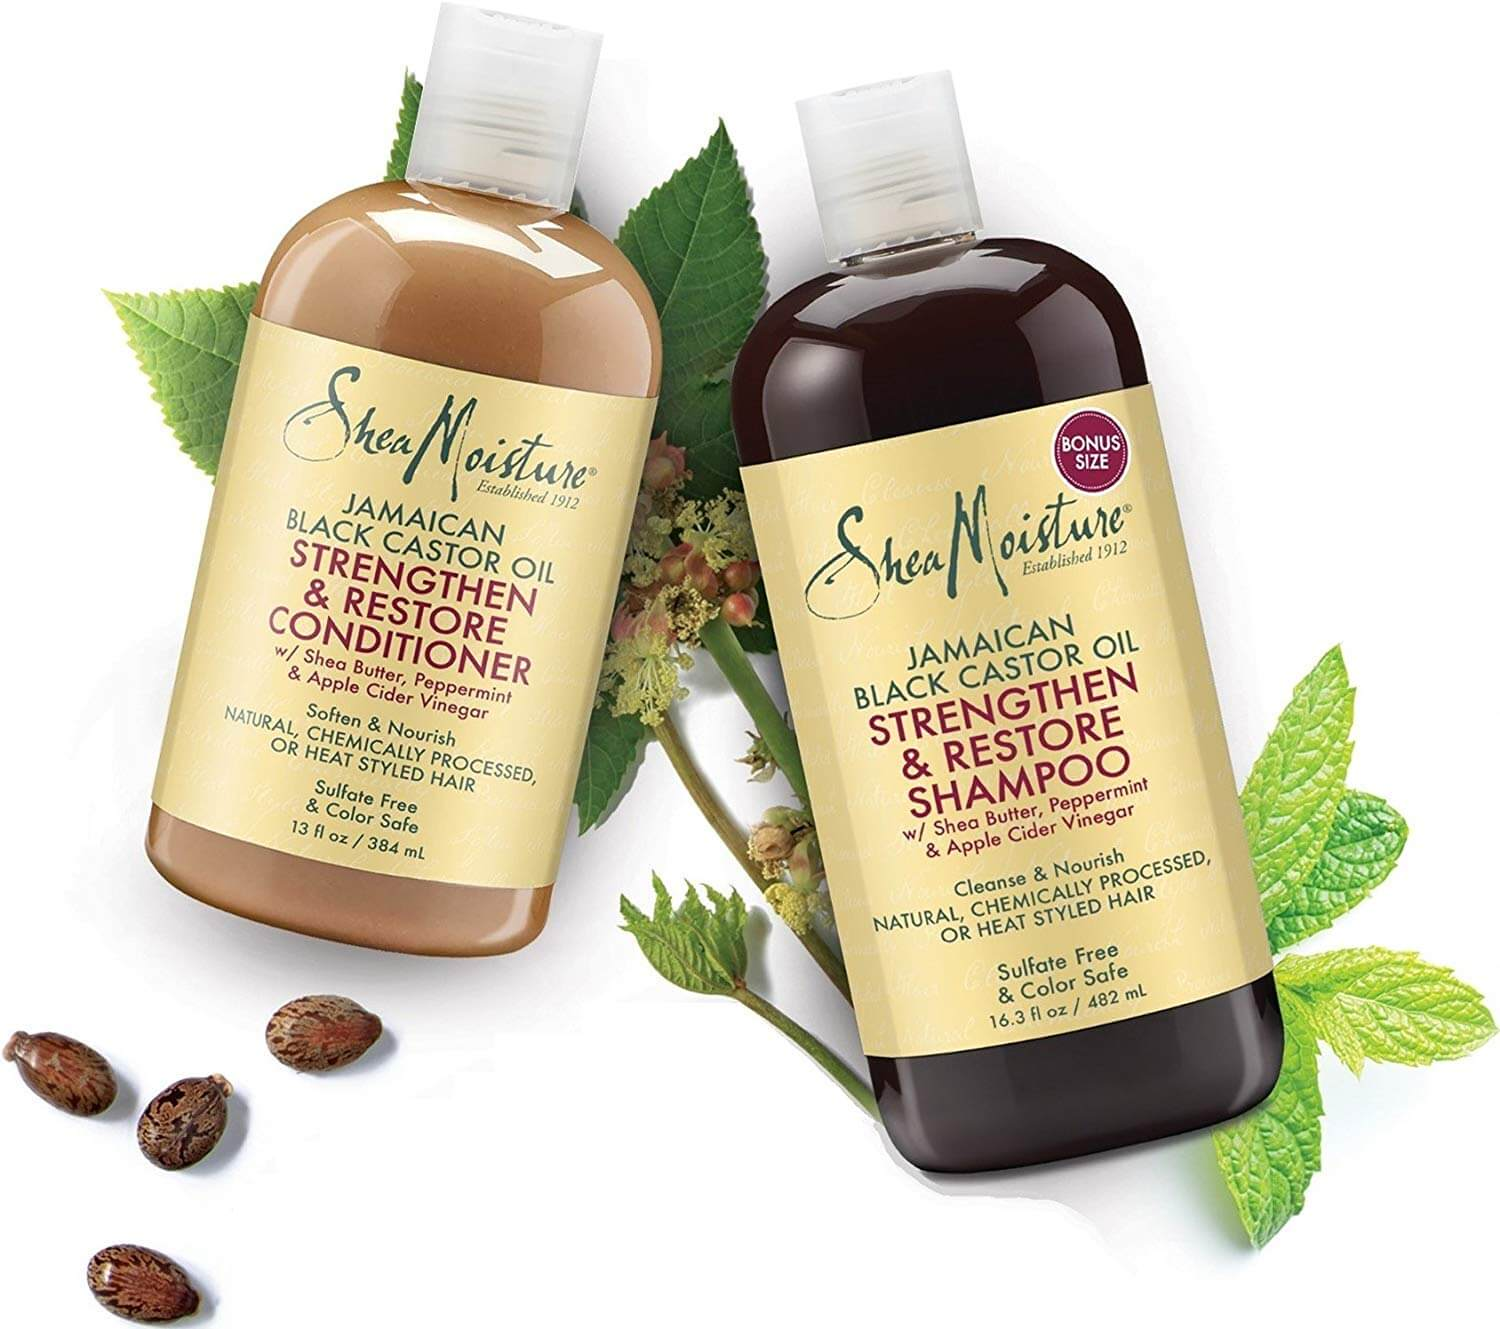 Castor oil shampoo and conditioner - perfect combo that encourages hair growth